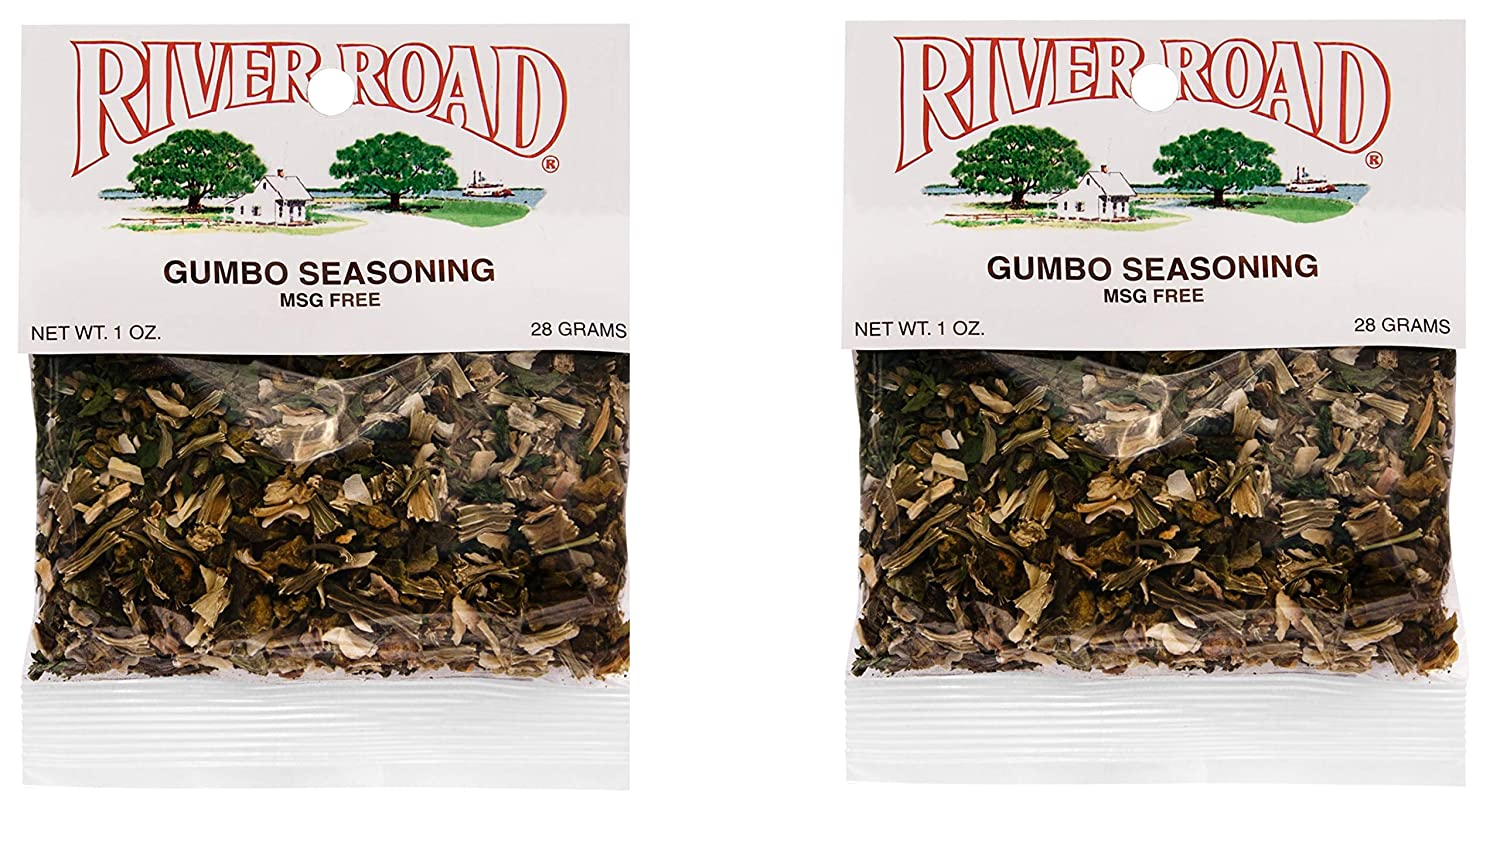 River Road Max 50% OFF No Cash special price Salt MSG Gumbo Packet 1 Ounce Seasoning Pack